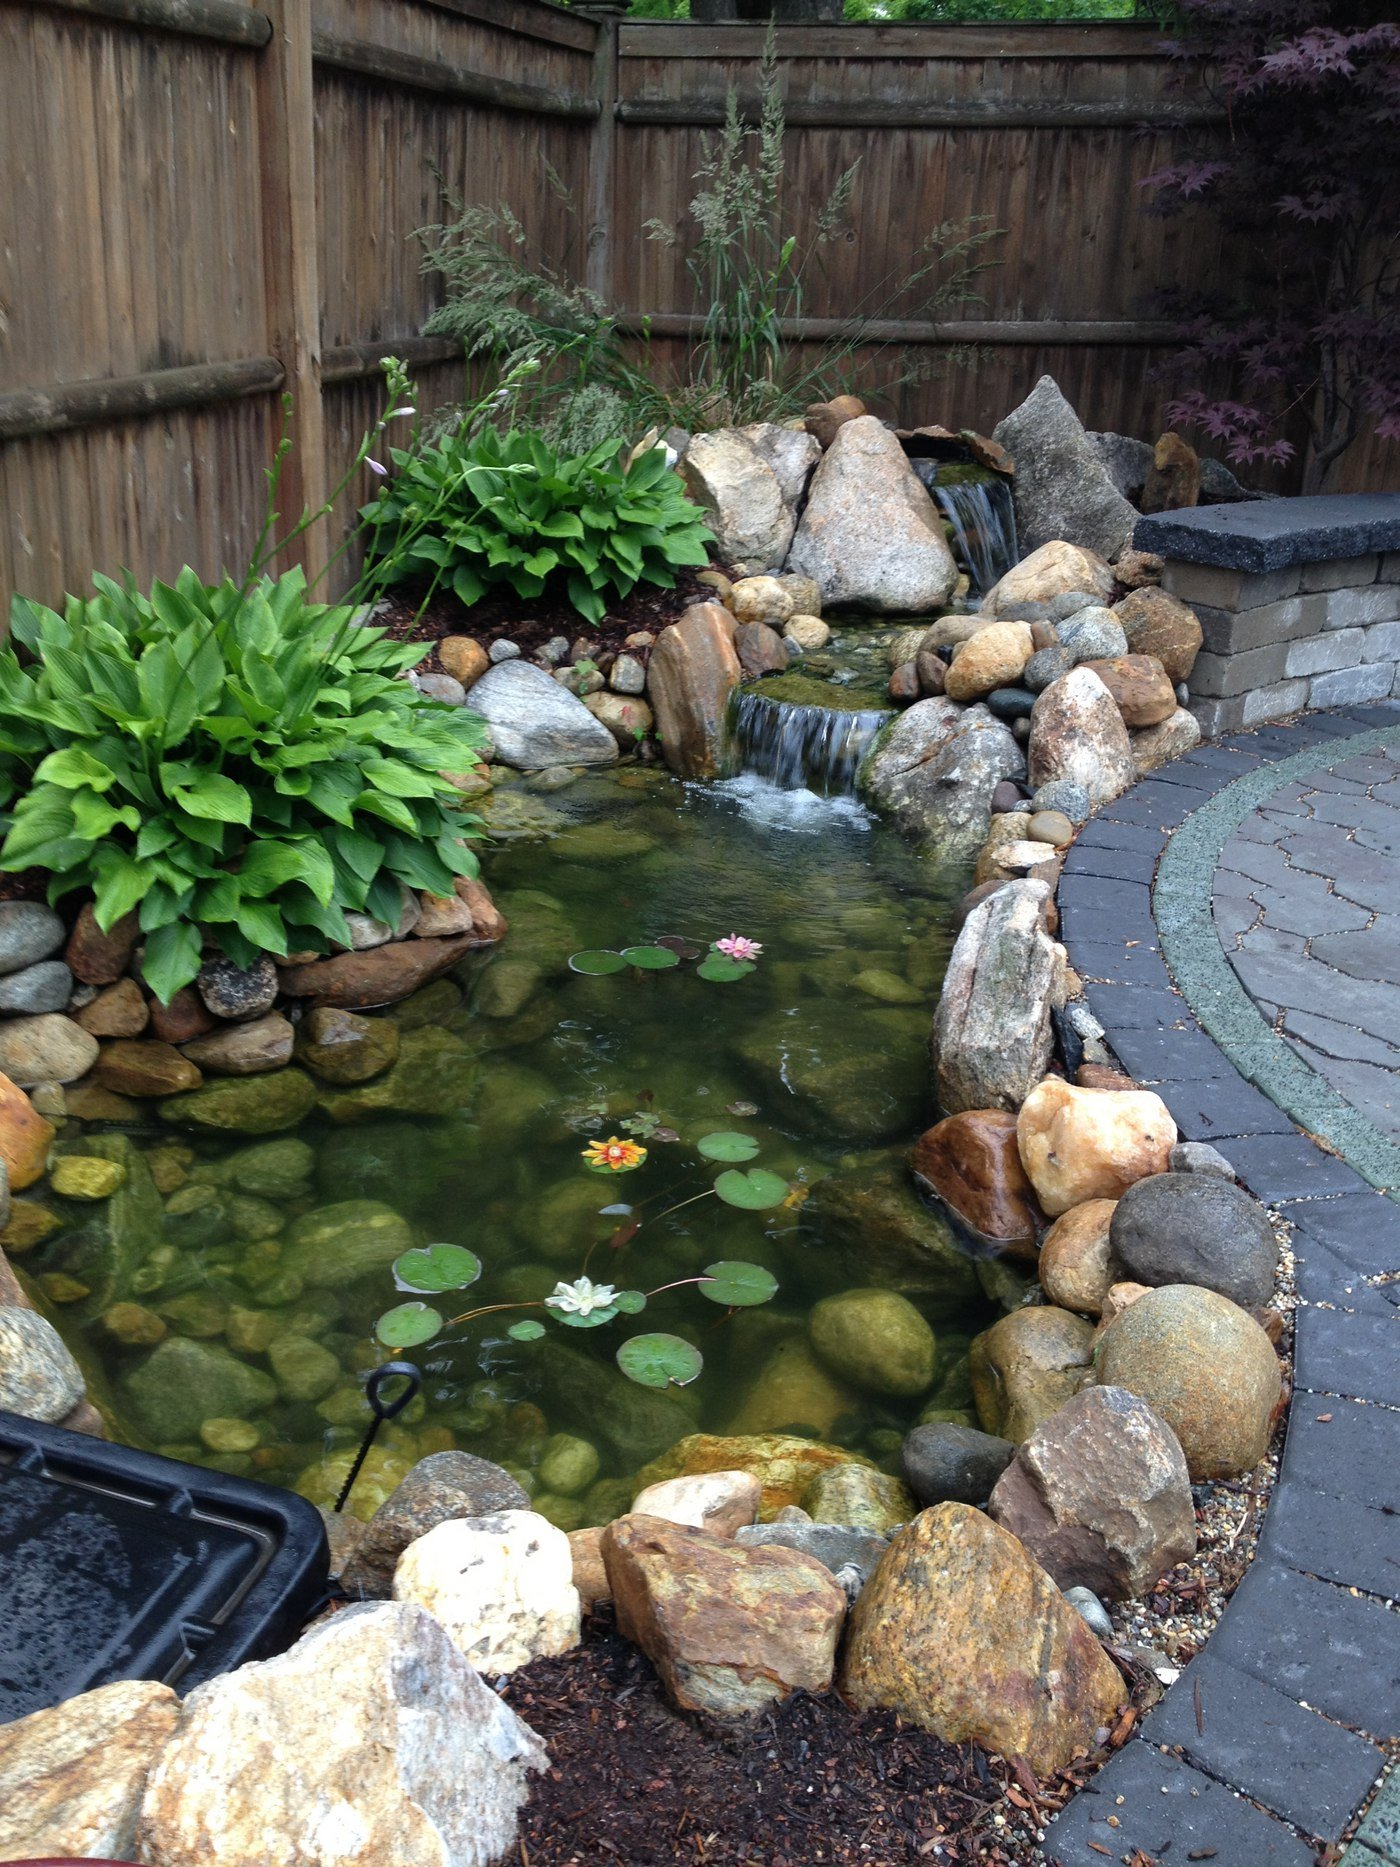 How often do I need to refill my water feature?